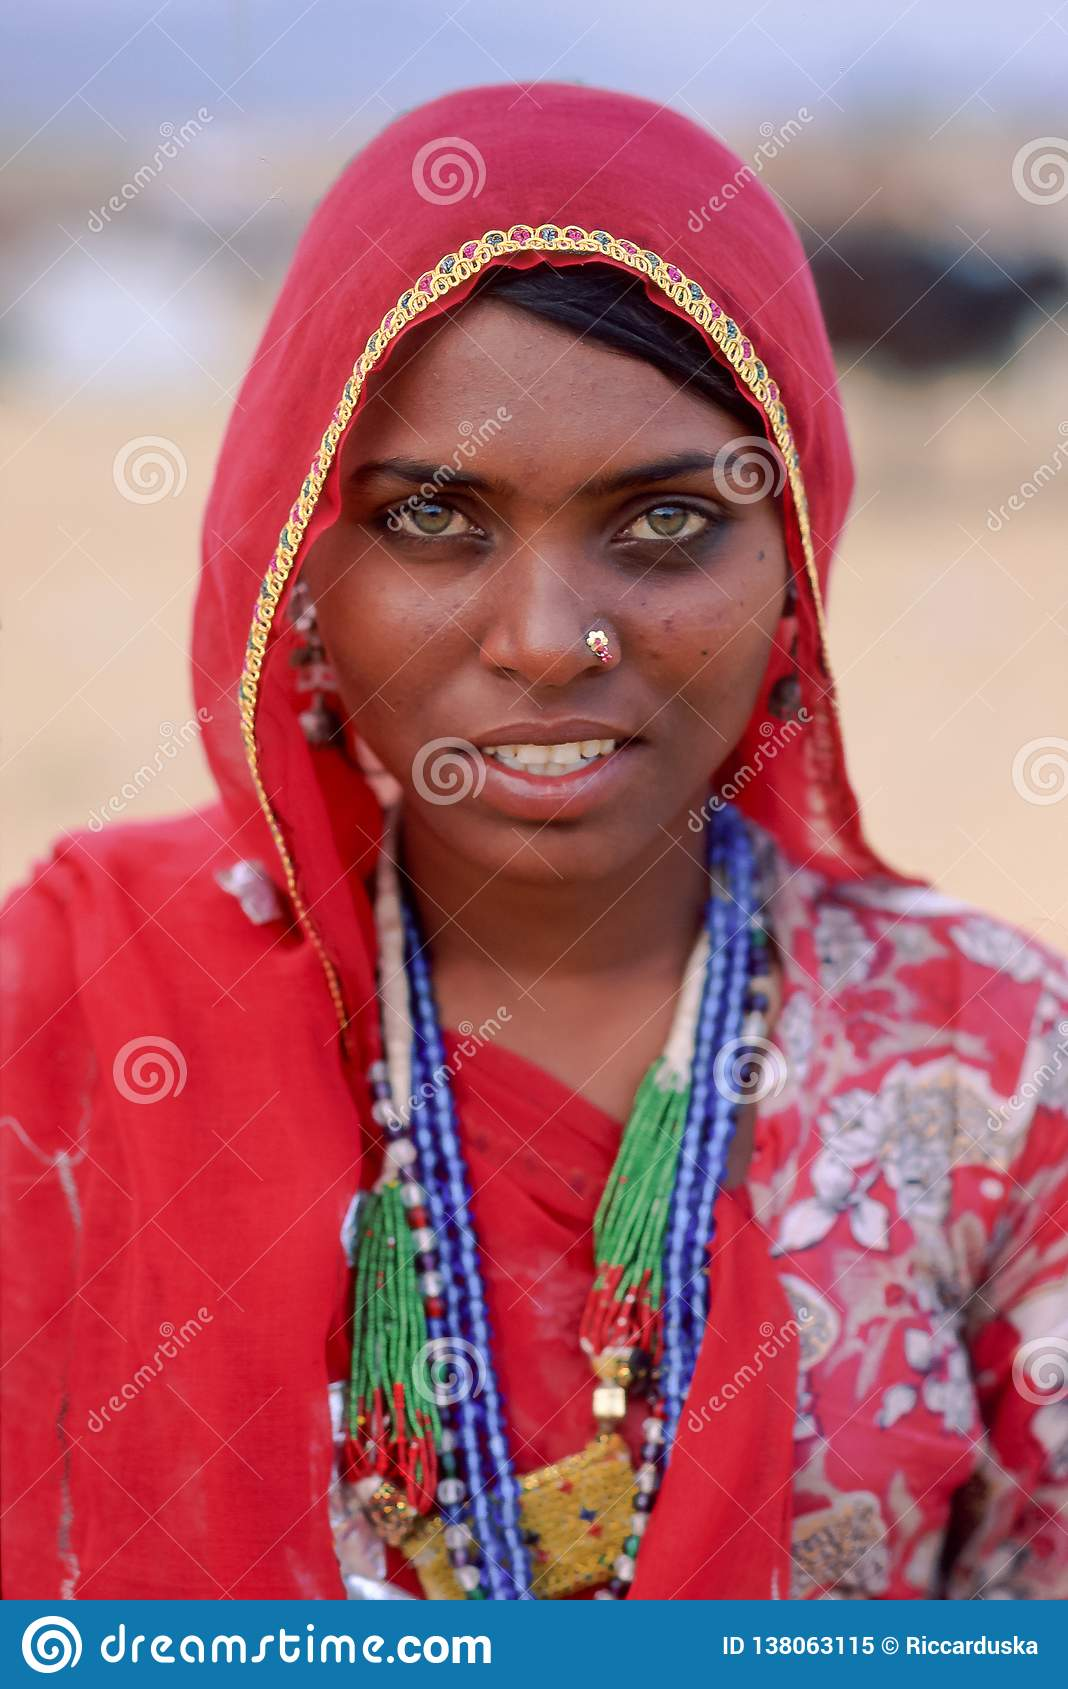 A smiling indian woman dressed in traditional Rajasthani clothing at Pushkar Camel Fair, North Western India